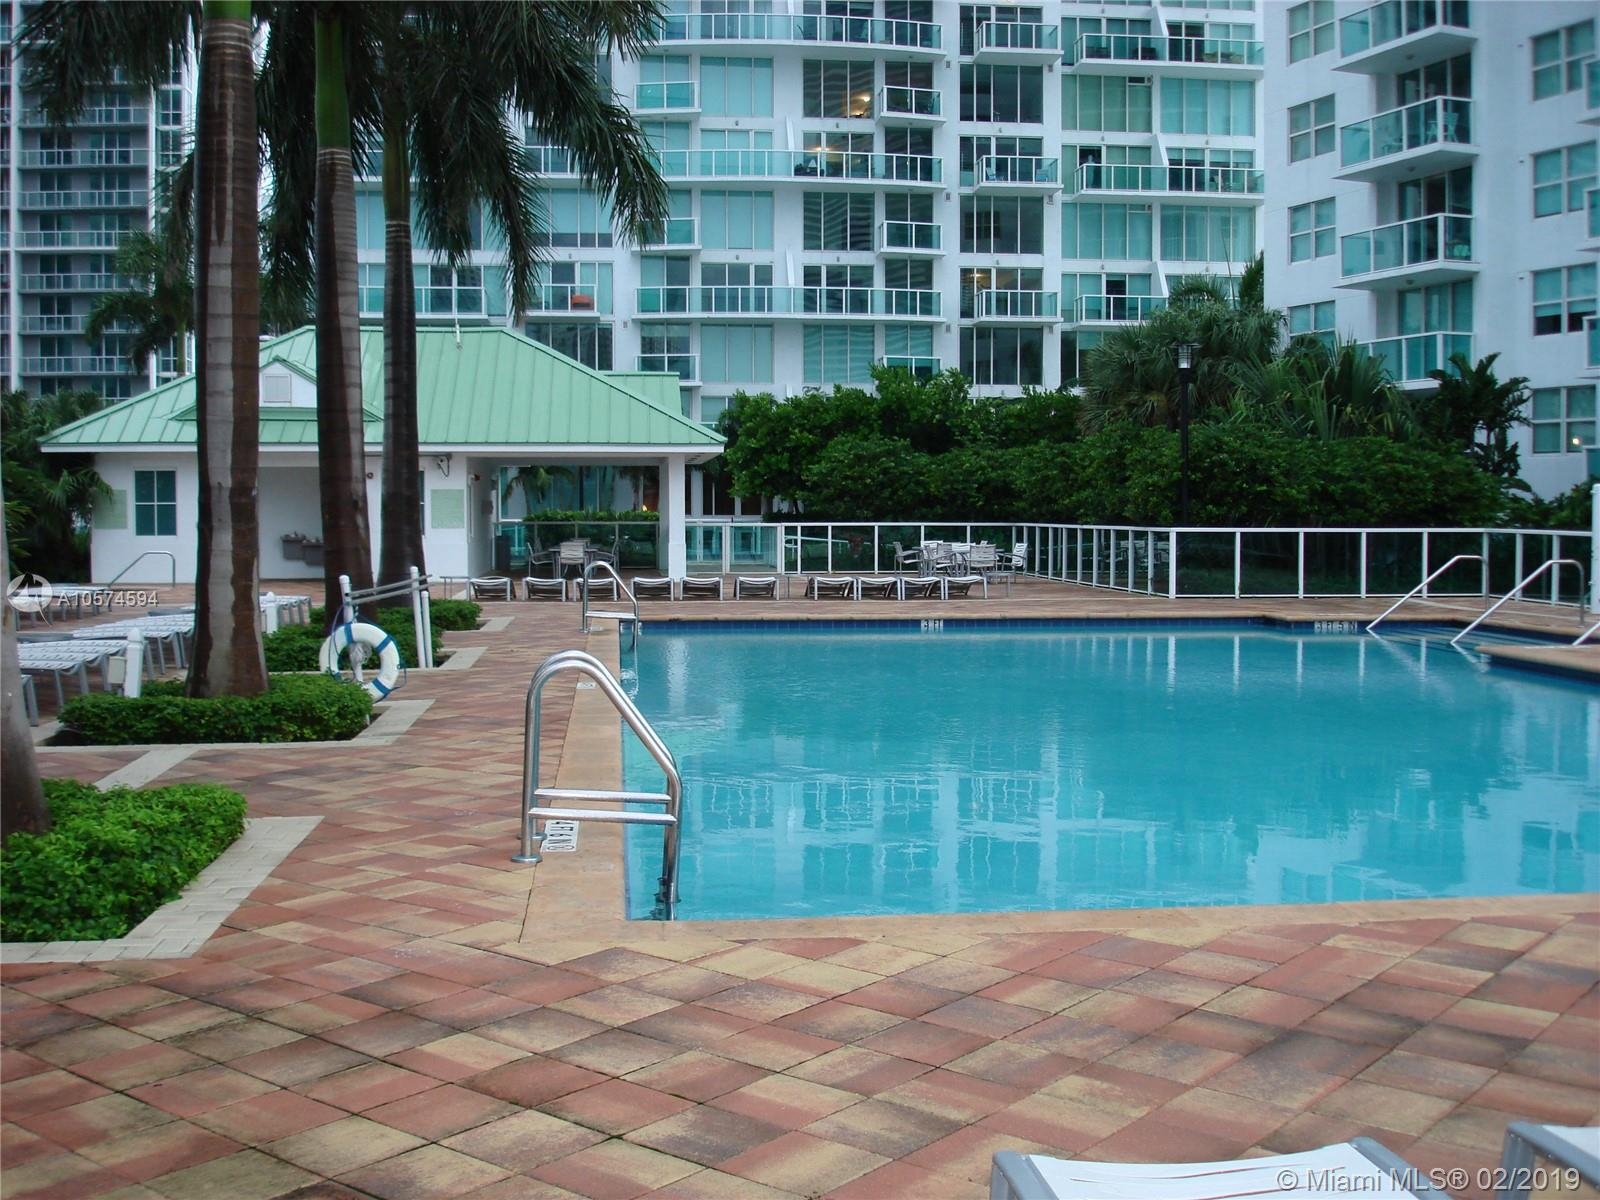 41 SE 5th Street, Miami, FL 33131-2504, Brickell on the River South #804, Brickell, Miami A10574594 image #24